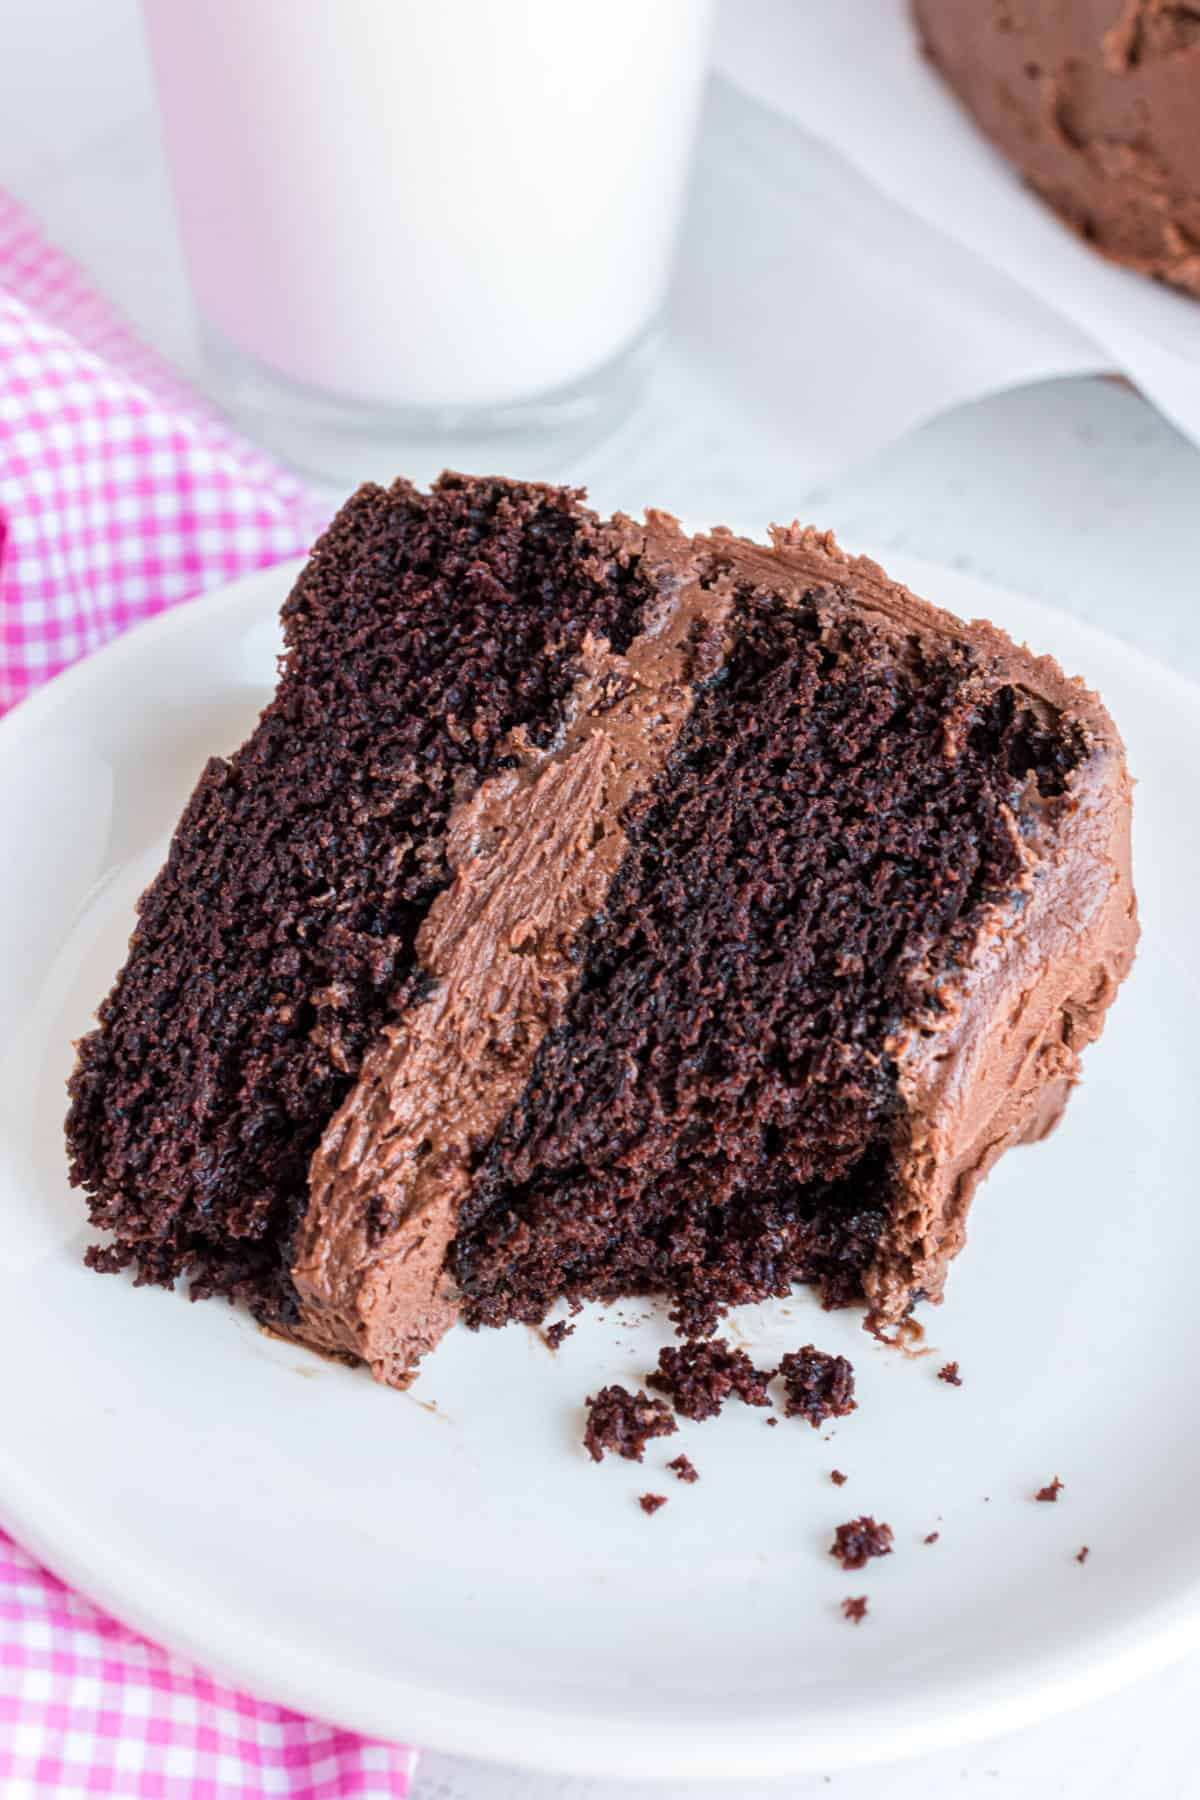 Slice of chocolate layer cake on a white plate with a bite removed and soft crumbs exposed.